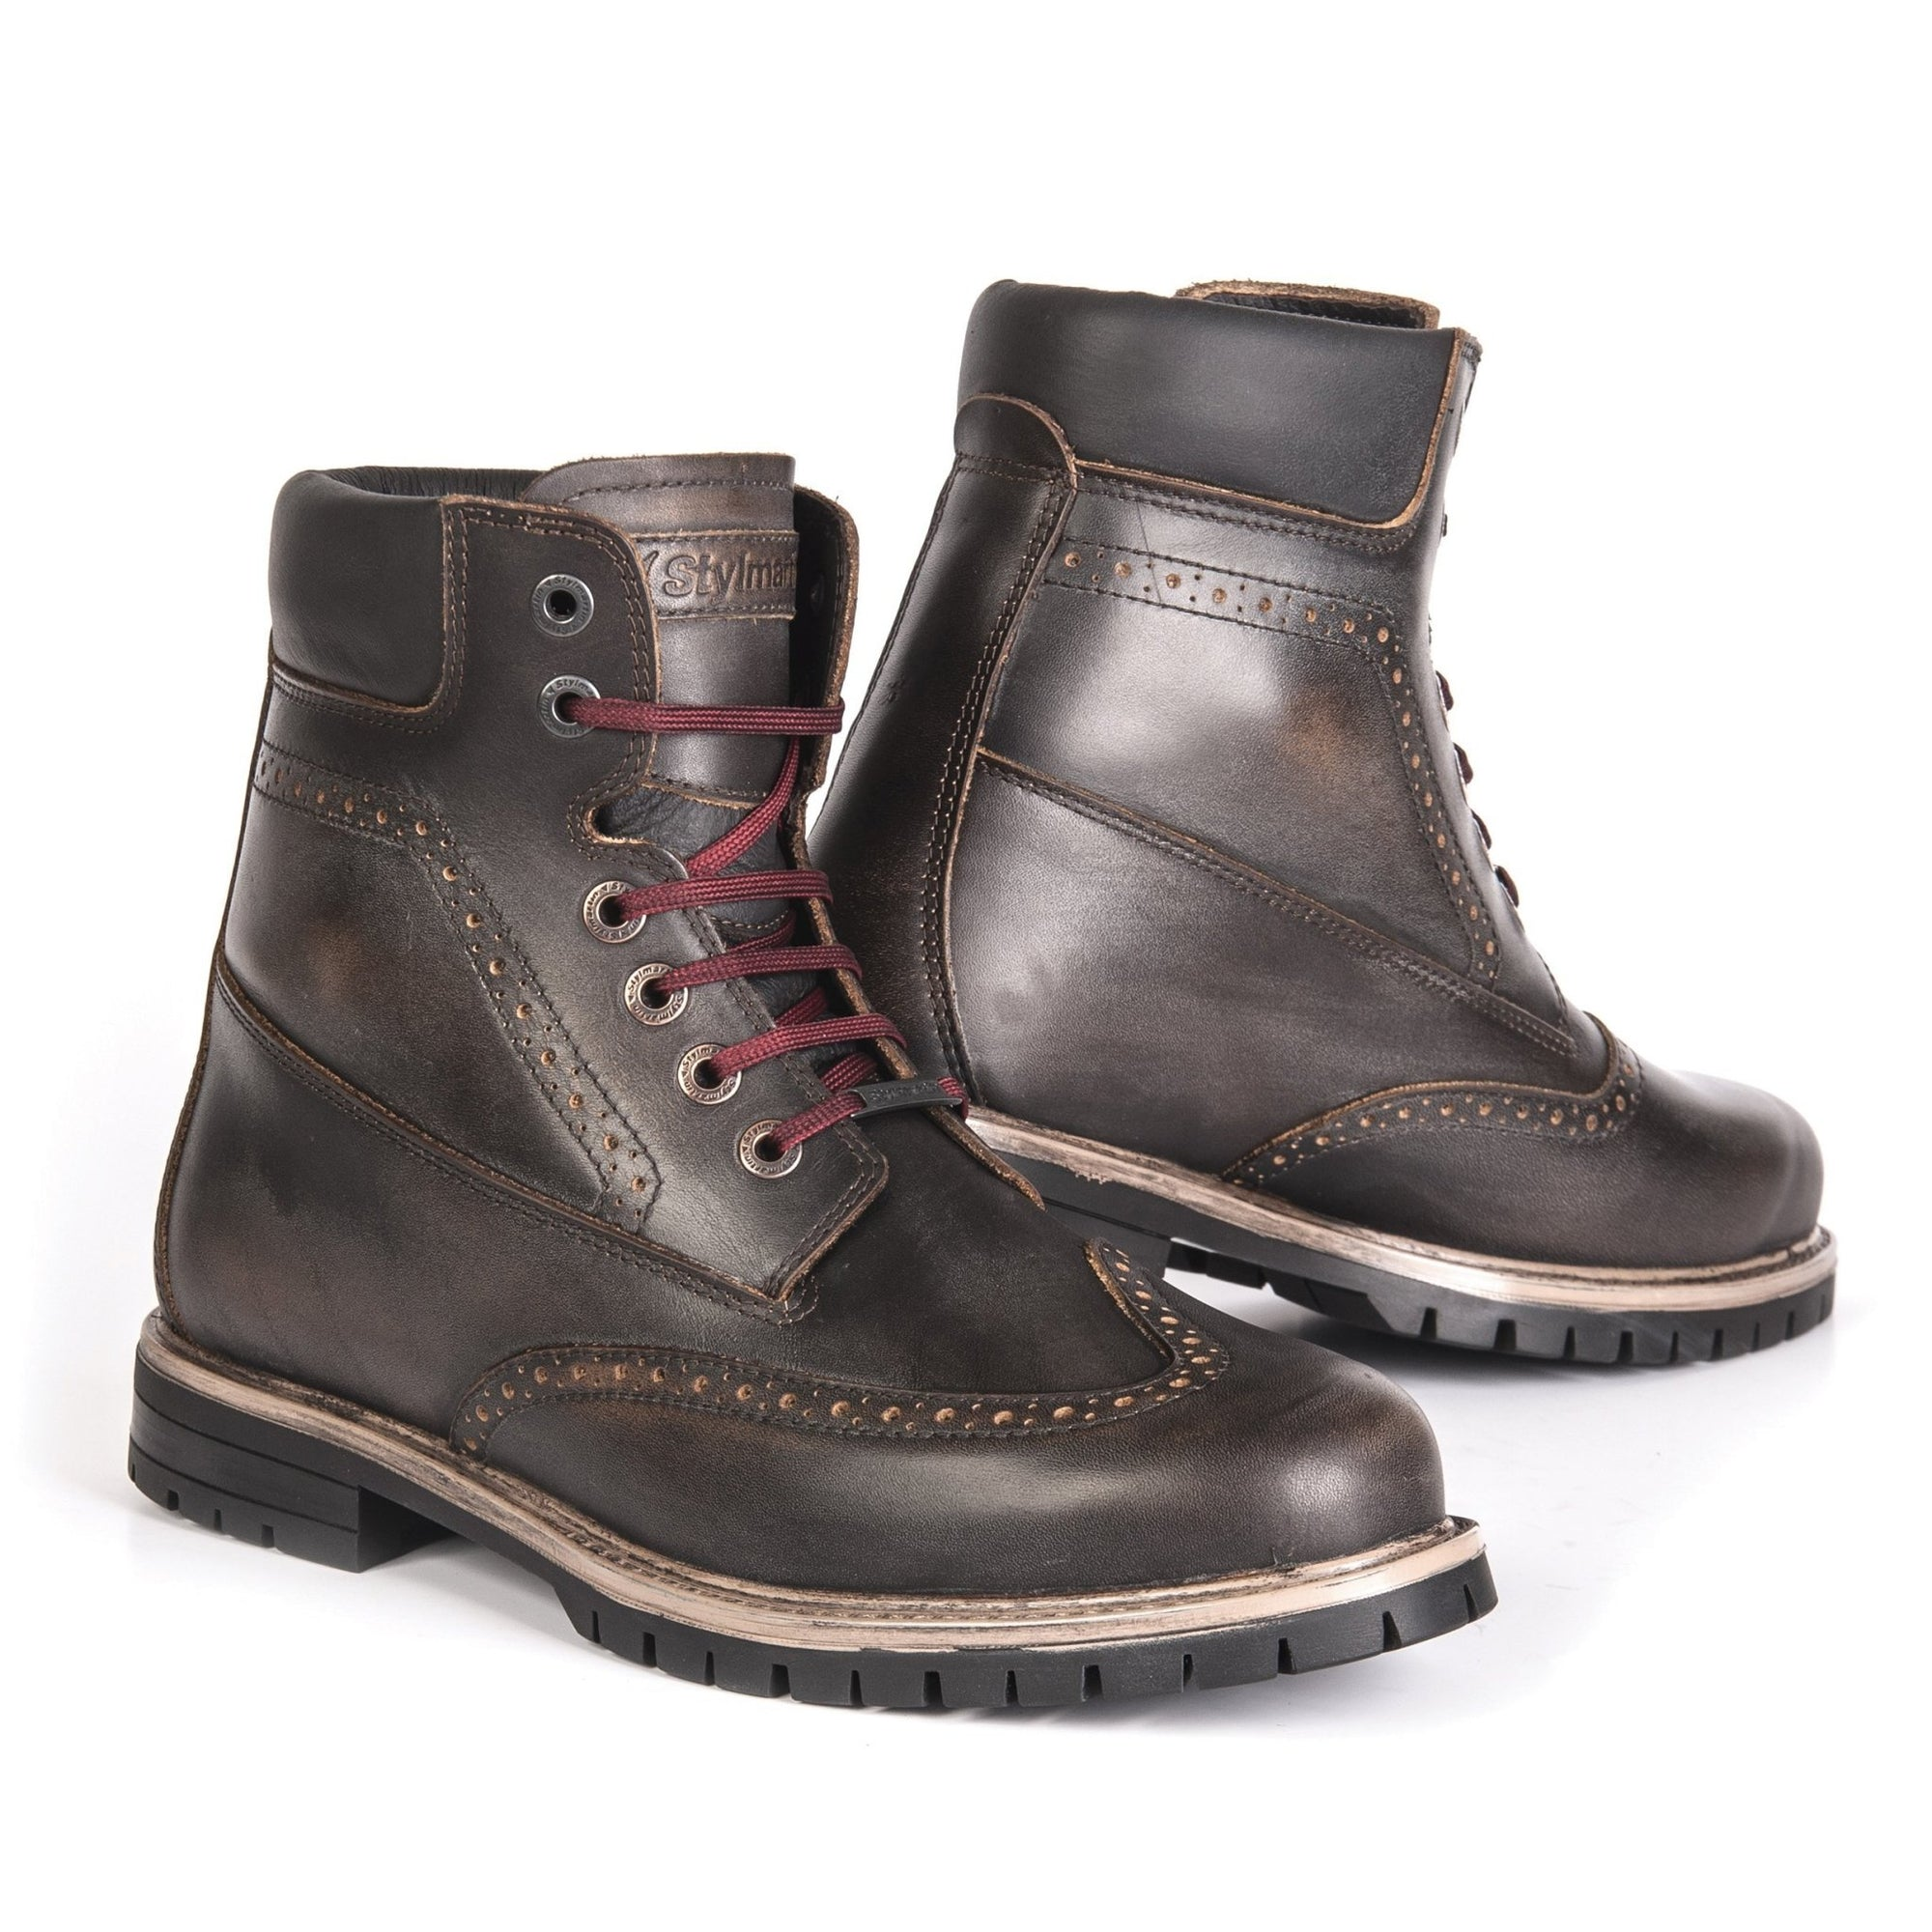 Stylmartin - Stylmartin Wave WP Urban in Brown - Boots - Salt Flats Clothing